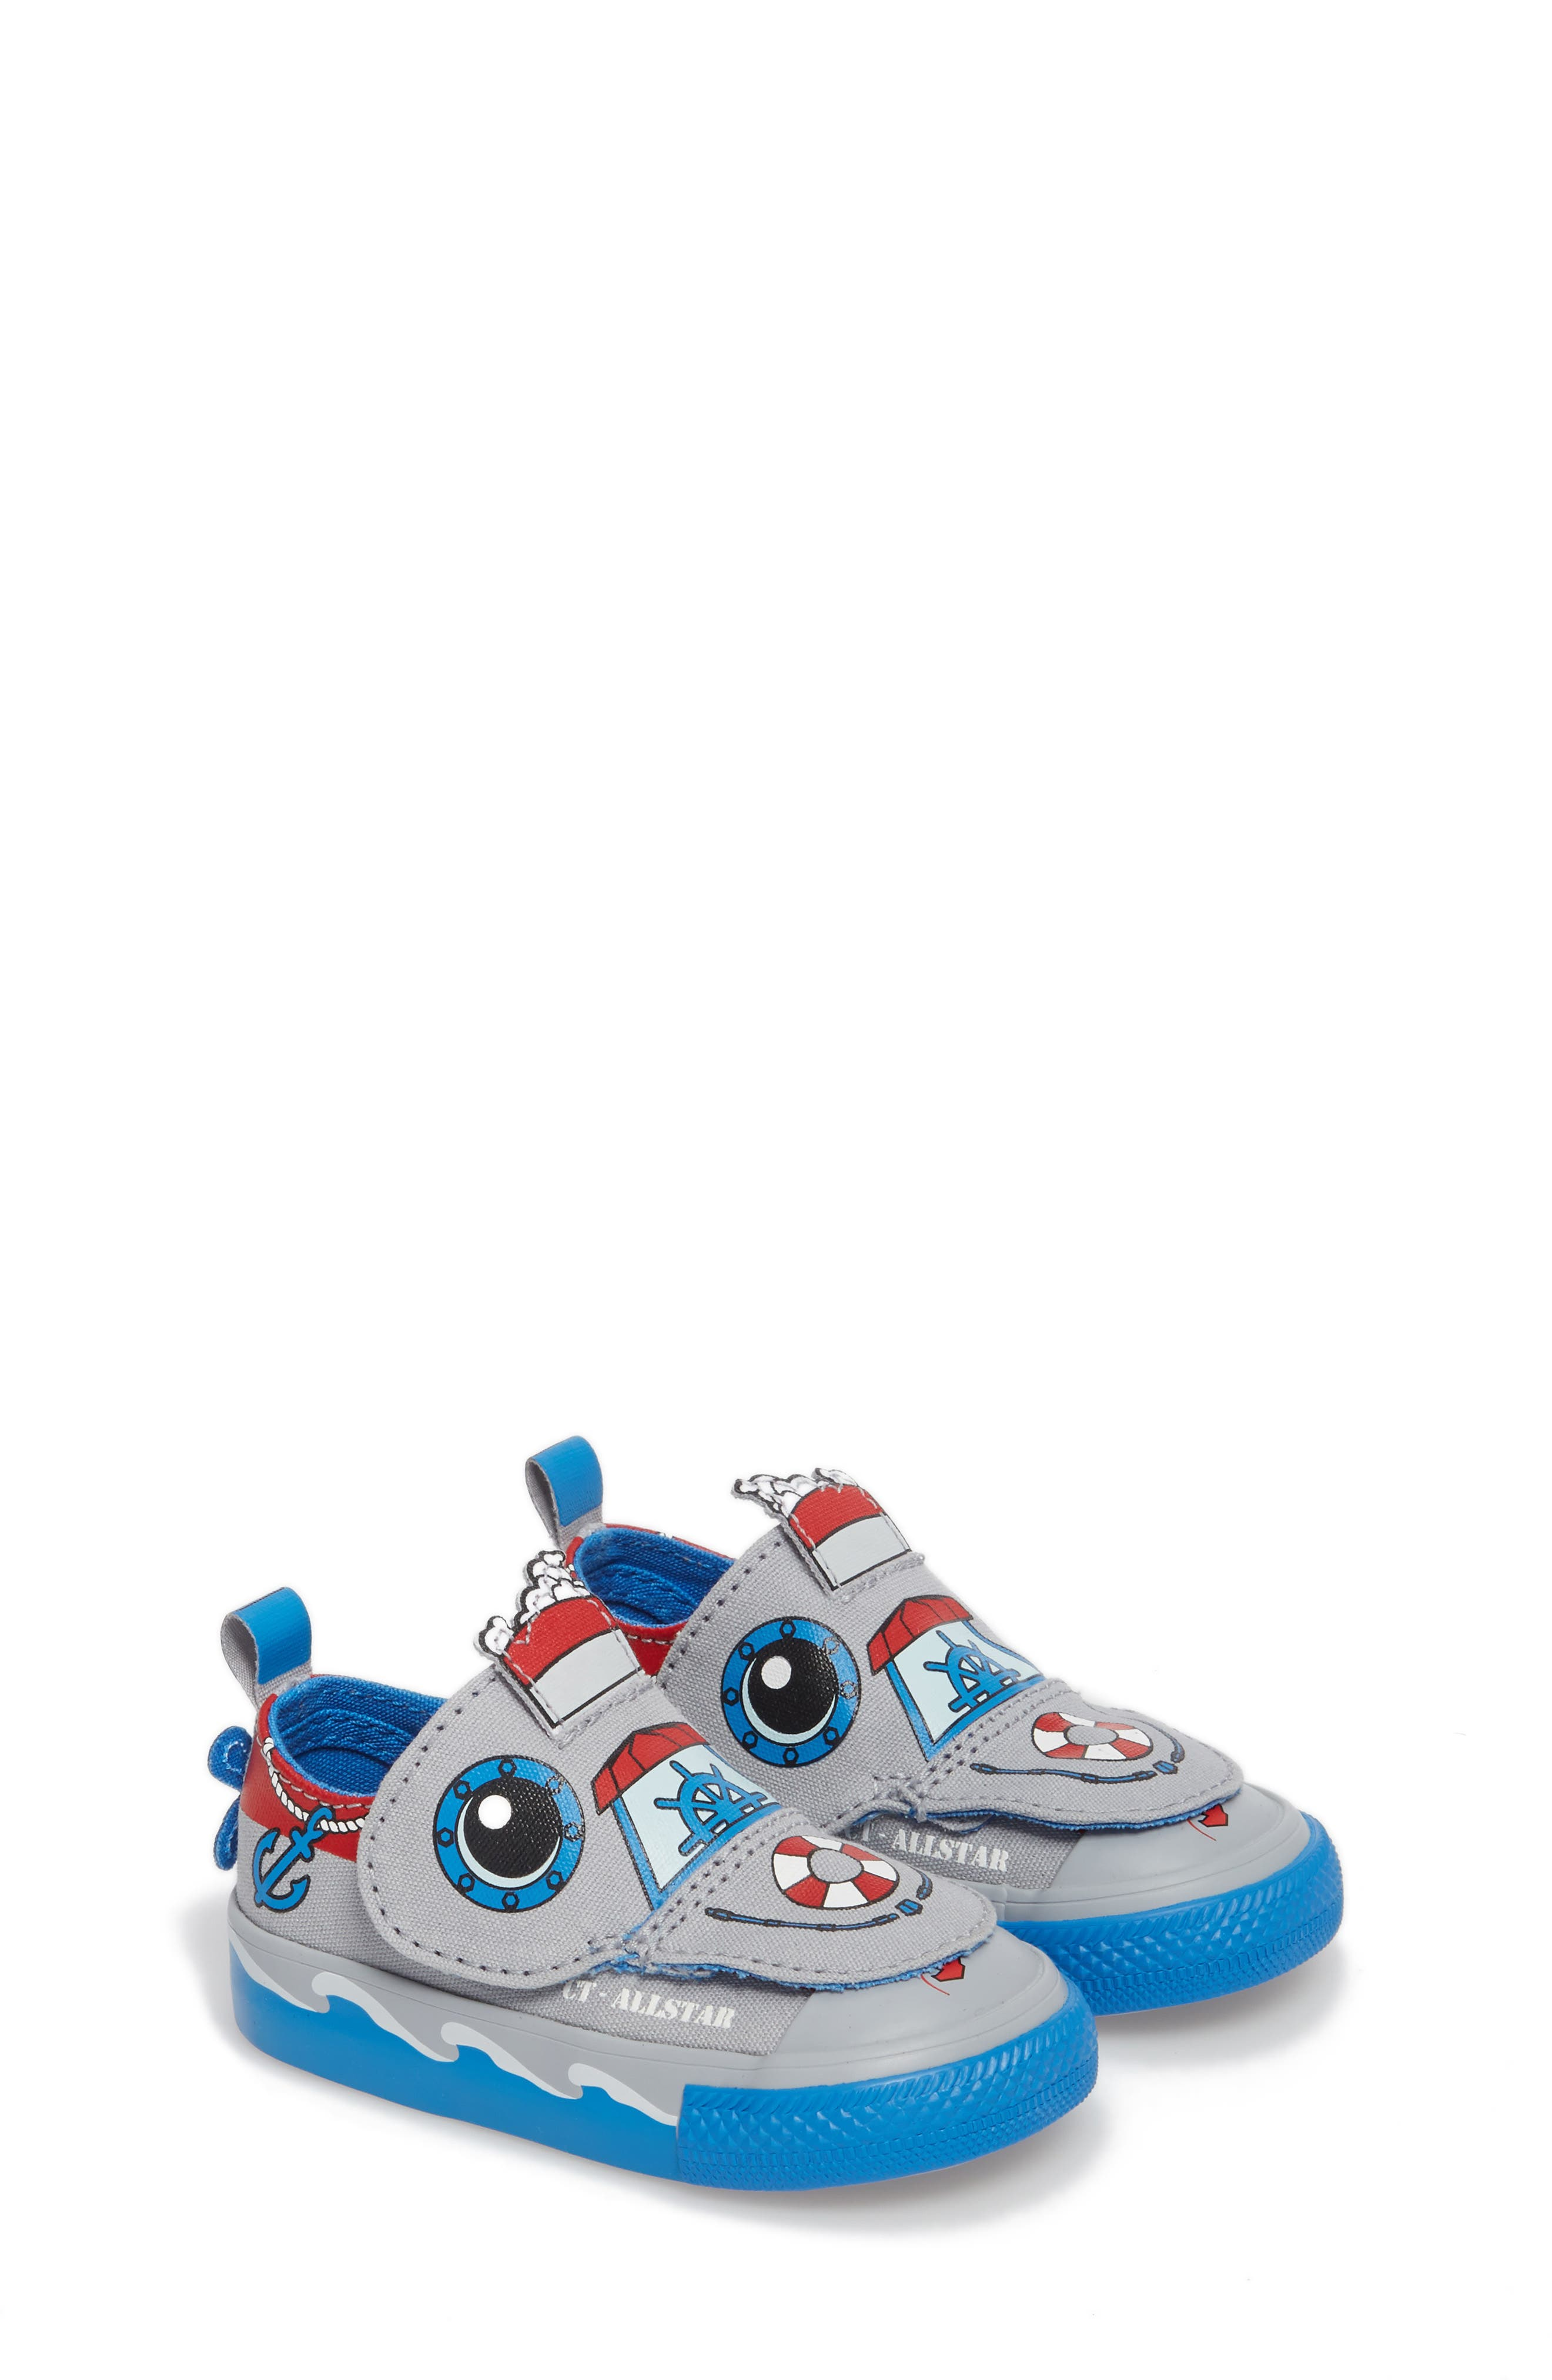 Chuck Taylor<sup>®</sup> All Star<sup>®</sup> Creatures Slip-On Sneaker,                         Main,                         color,